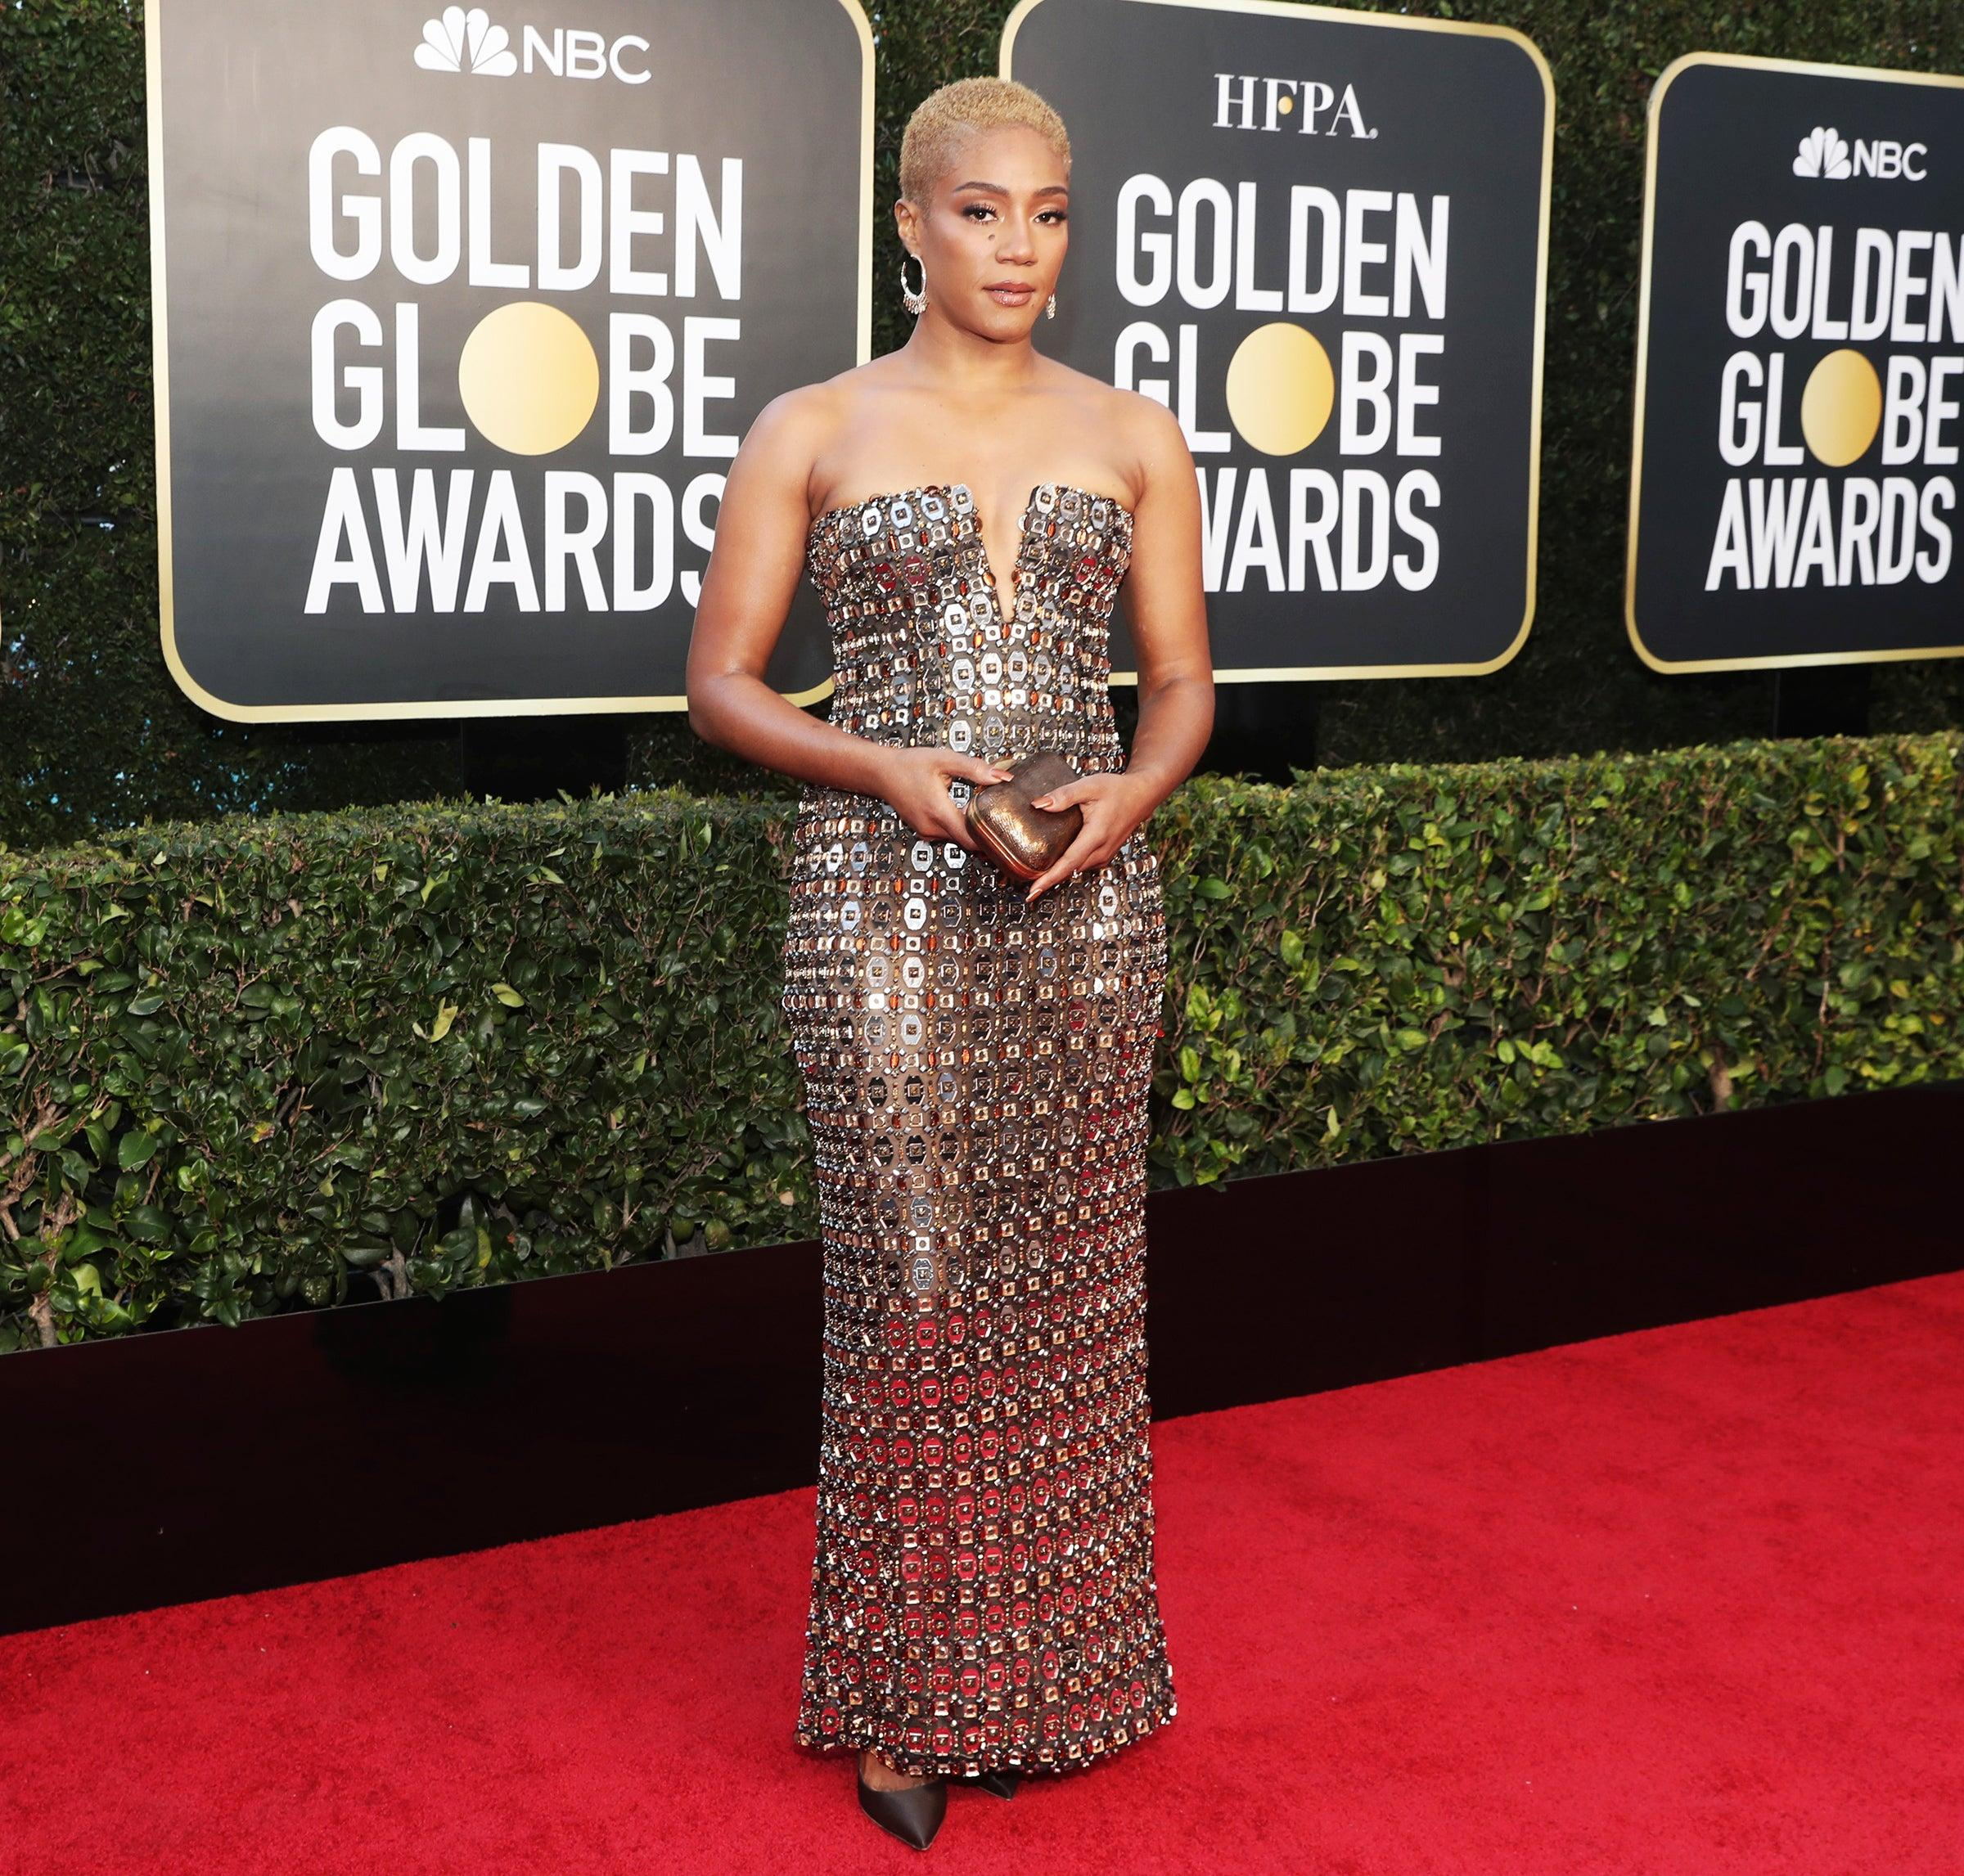 "<h2>Tiffany Haddish in custom Alberta Ferretti </h2><br>Tiffany Haddish made armour look chic in this custom, chainmail gown by Alberta Ferretti.<span class=""copyright"">Photo: Todd Williamson/NBC/NBCU Photo Bank/Getty Images.</span>"